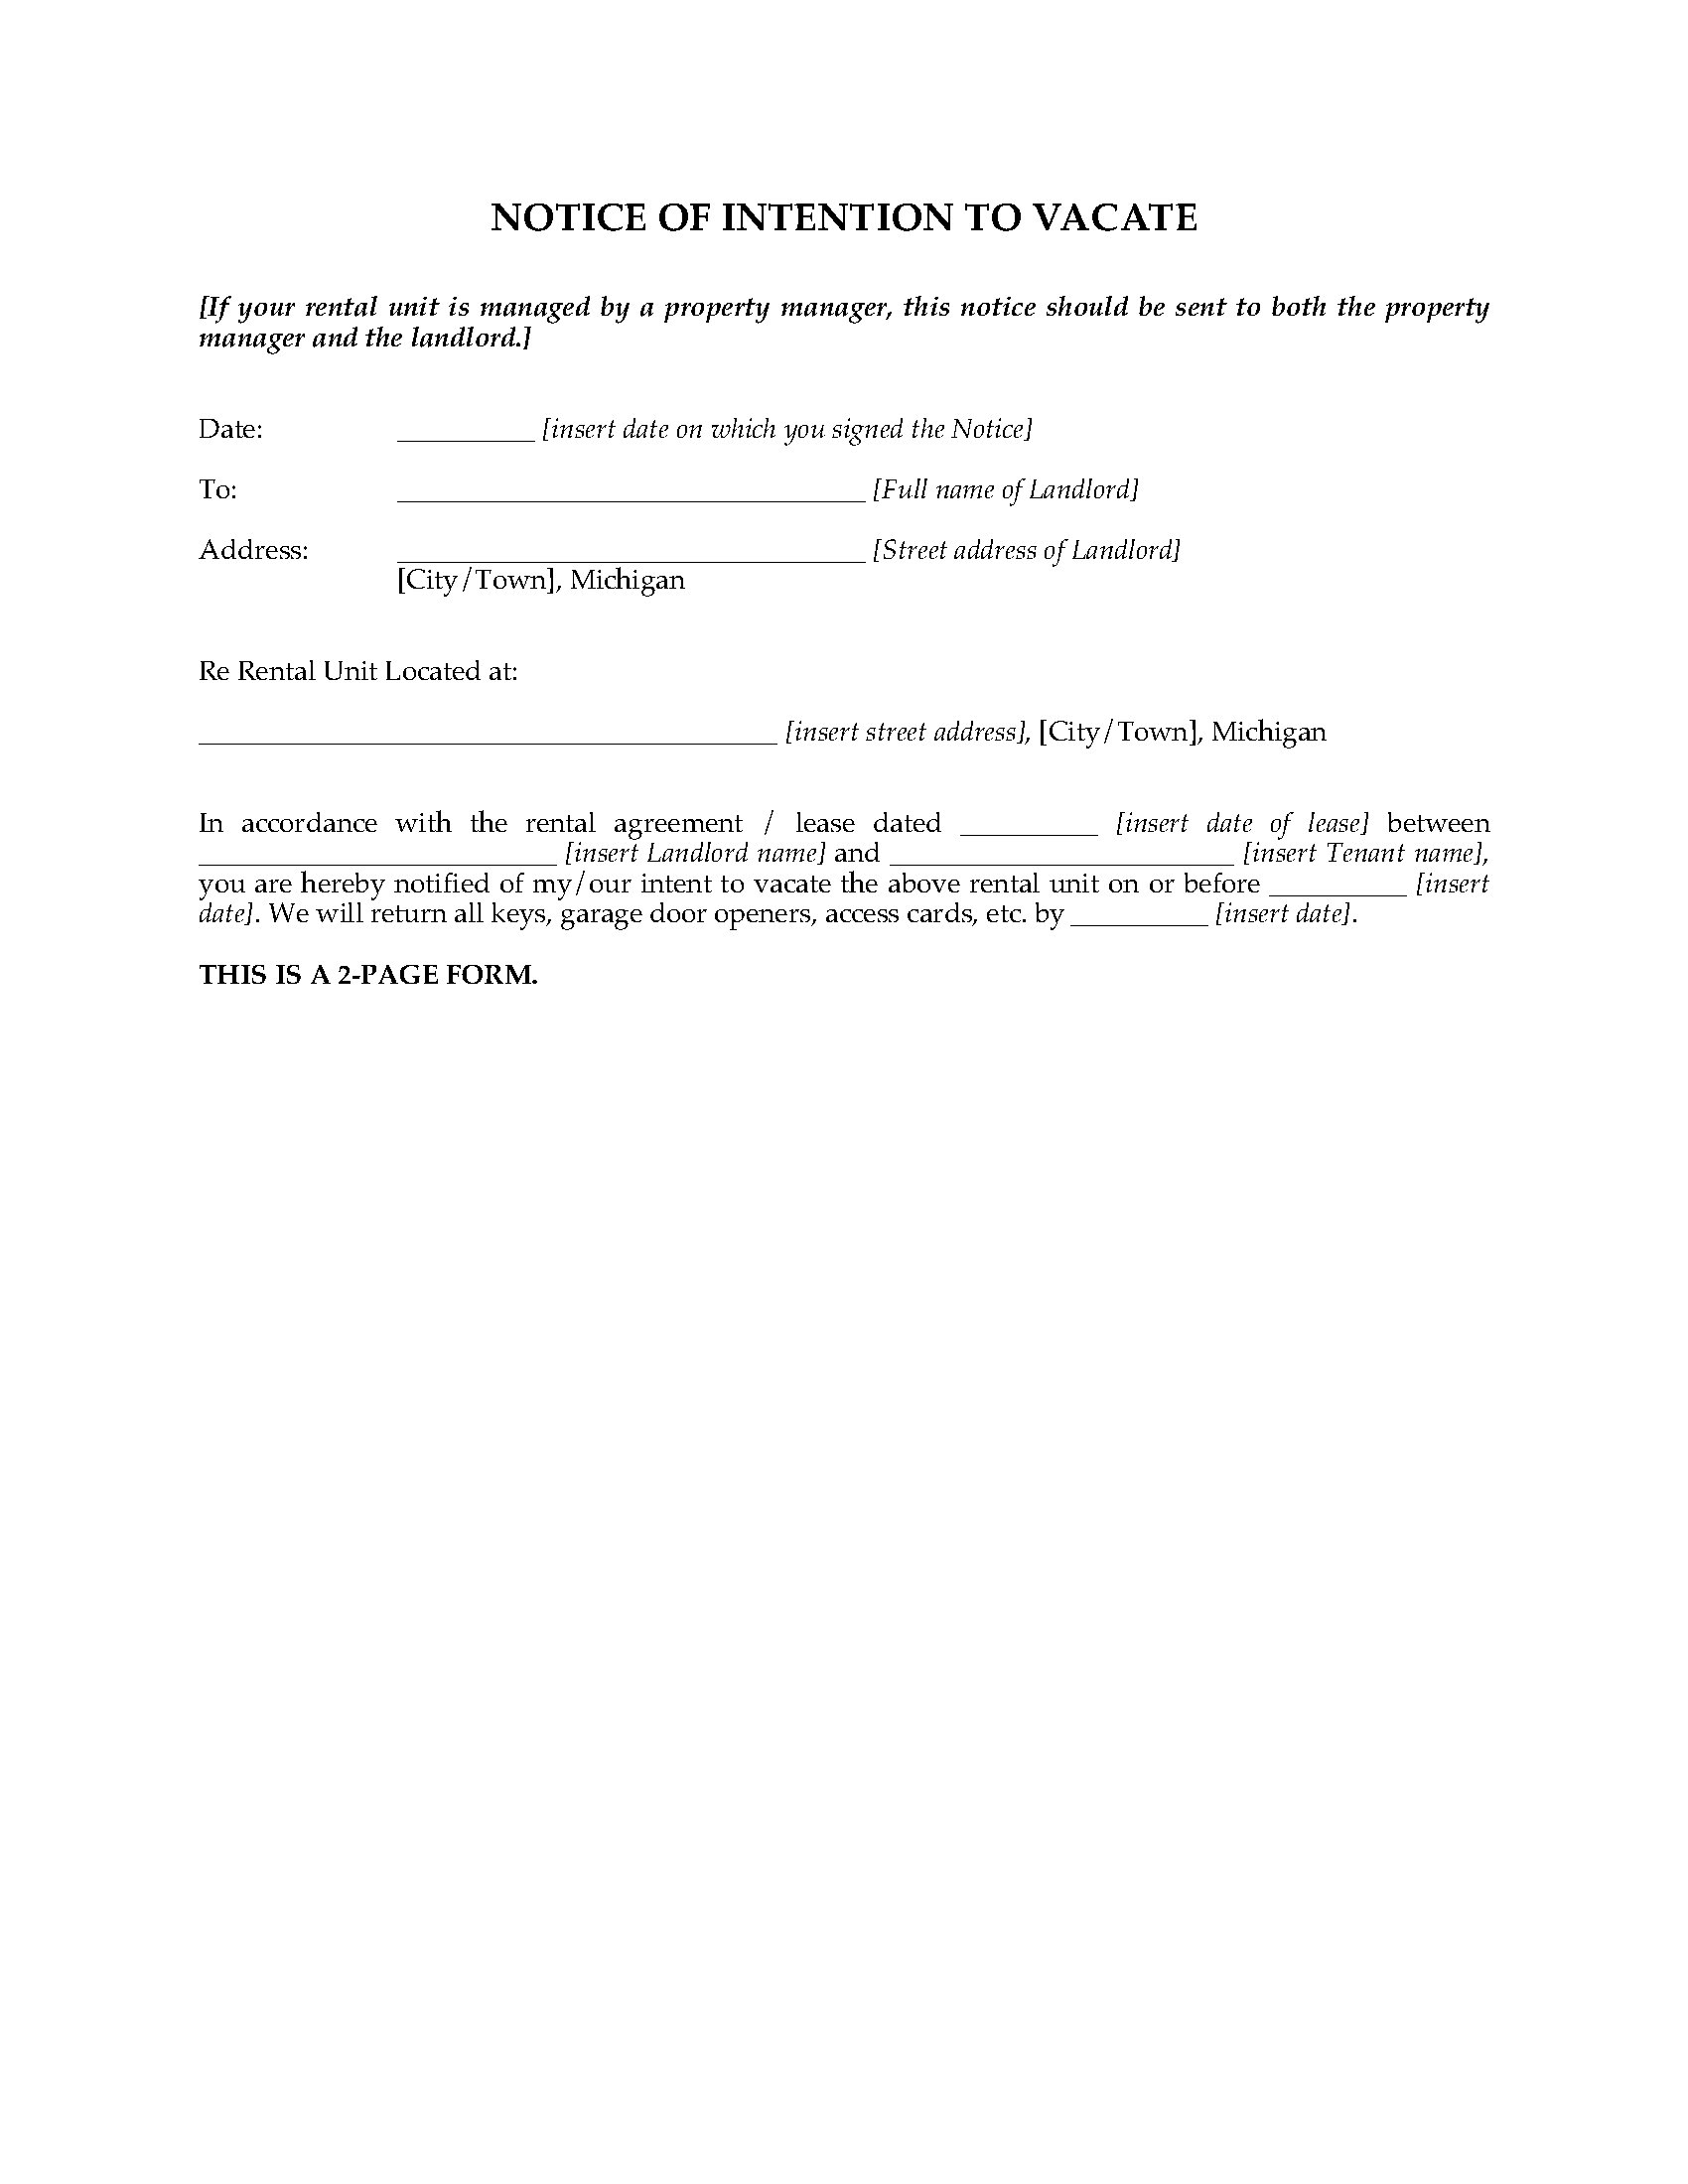 Michigan Notice To Vacate Forms